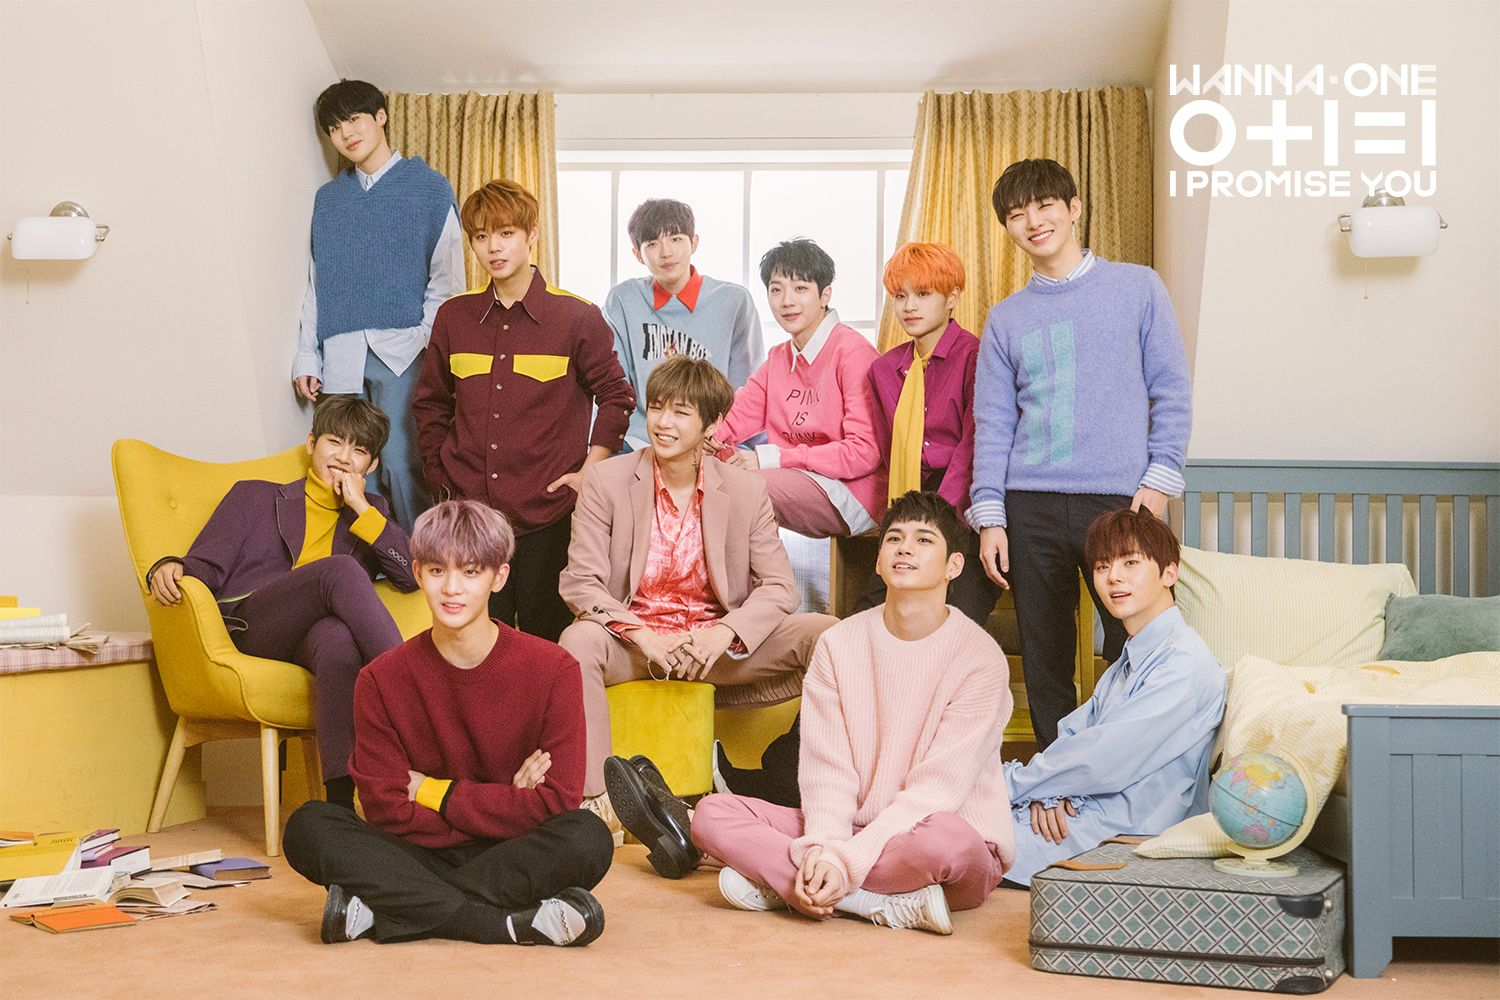 Wanna One I Promise You 0 1 1 Day Version Photoshoot Kenangan